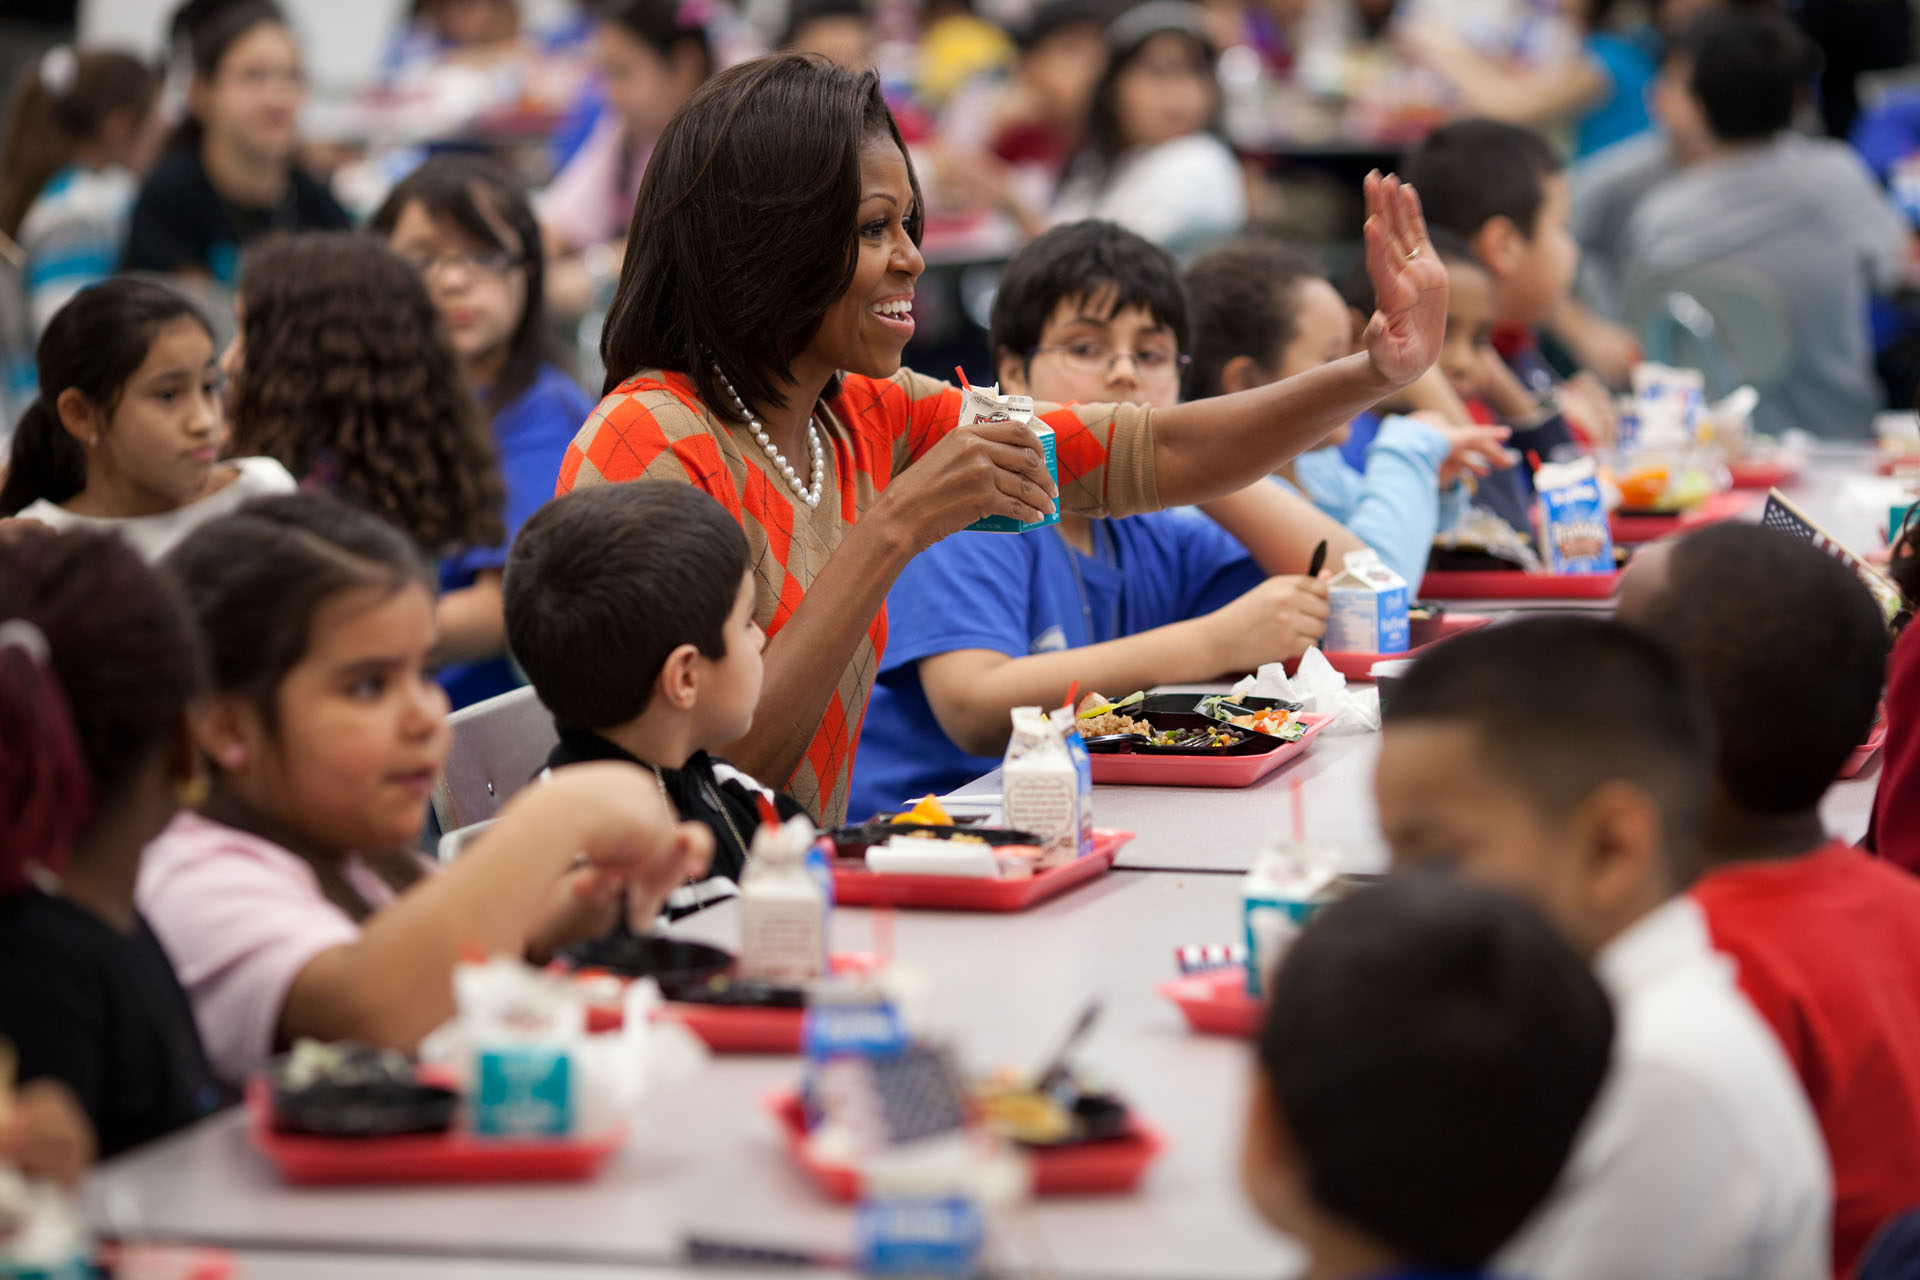 First Lady Michelle Obama has lunch with Parklawn Elementary School students